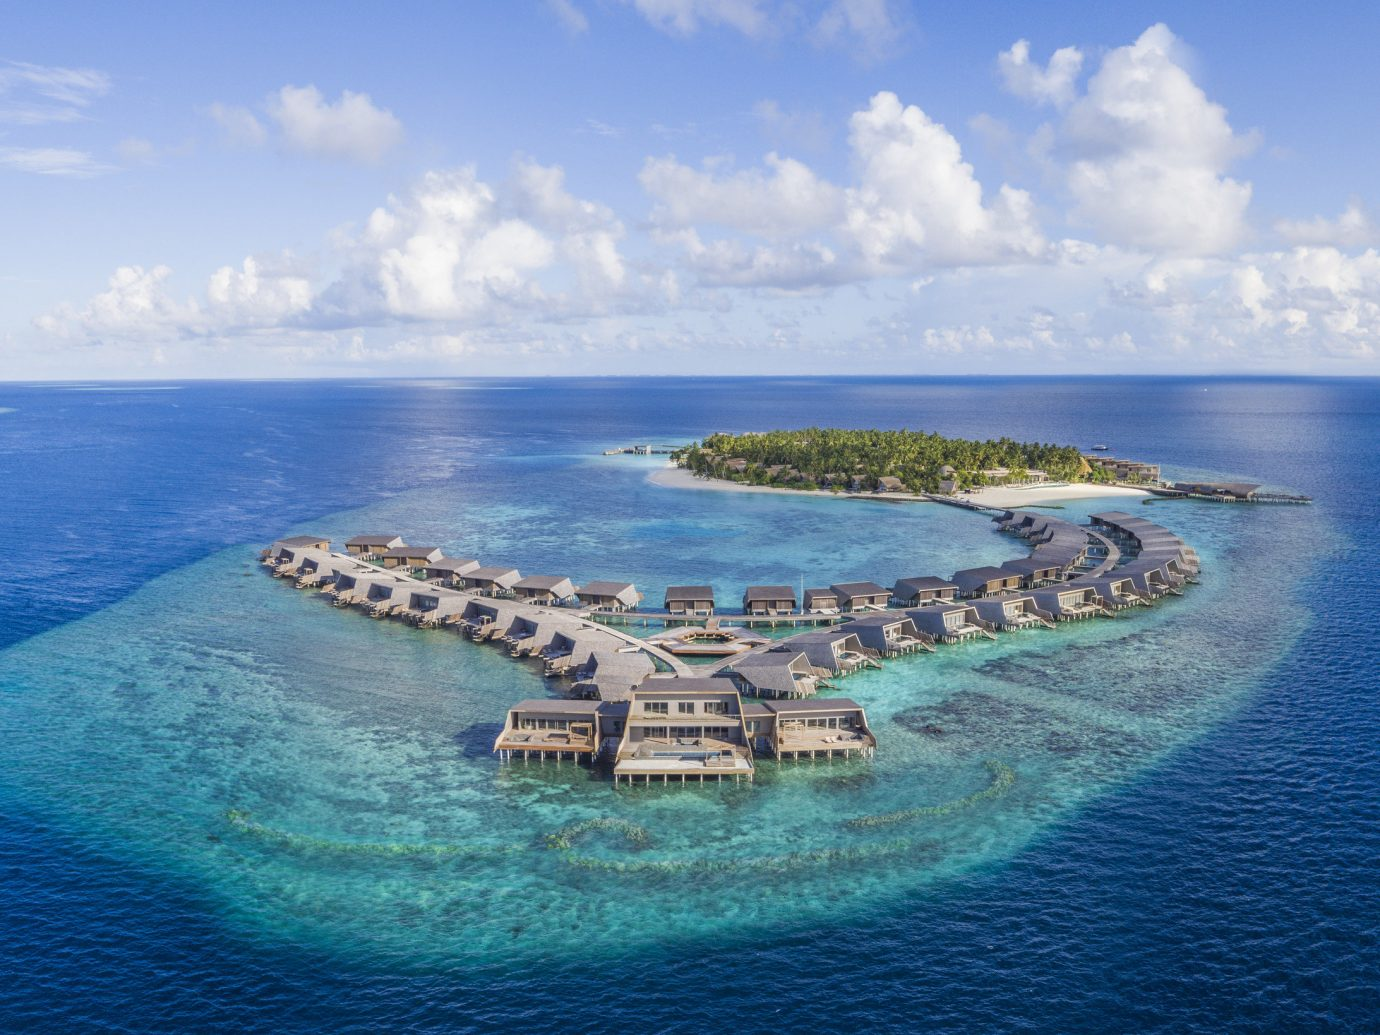 Hotels Romance Trip Ideas water sky outdoor Nature Boat reef geographical feature Sea archipelago Ocean horizon islet Coast bay blue aerial photography cape shore Island caribbean artificial island terrain clouds traveling promontory distance